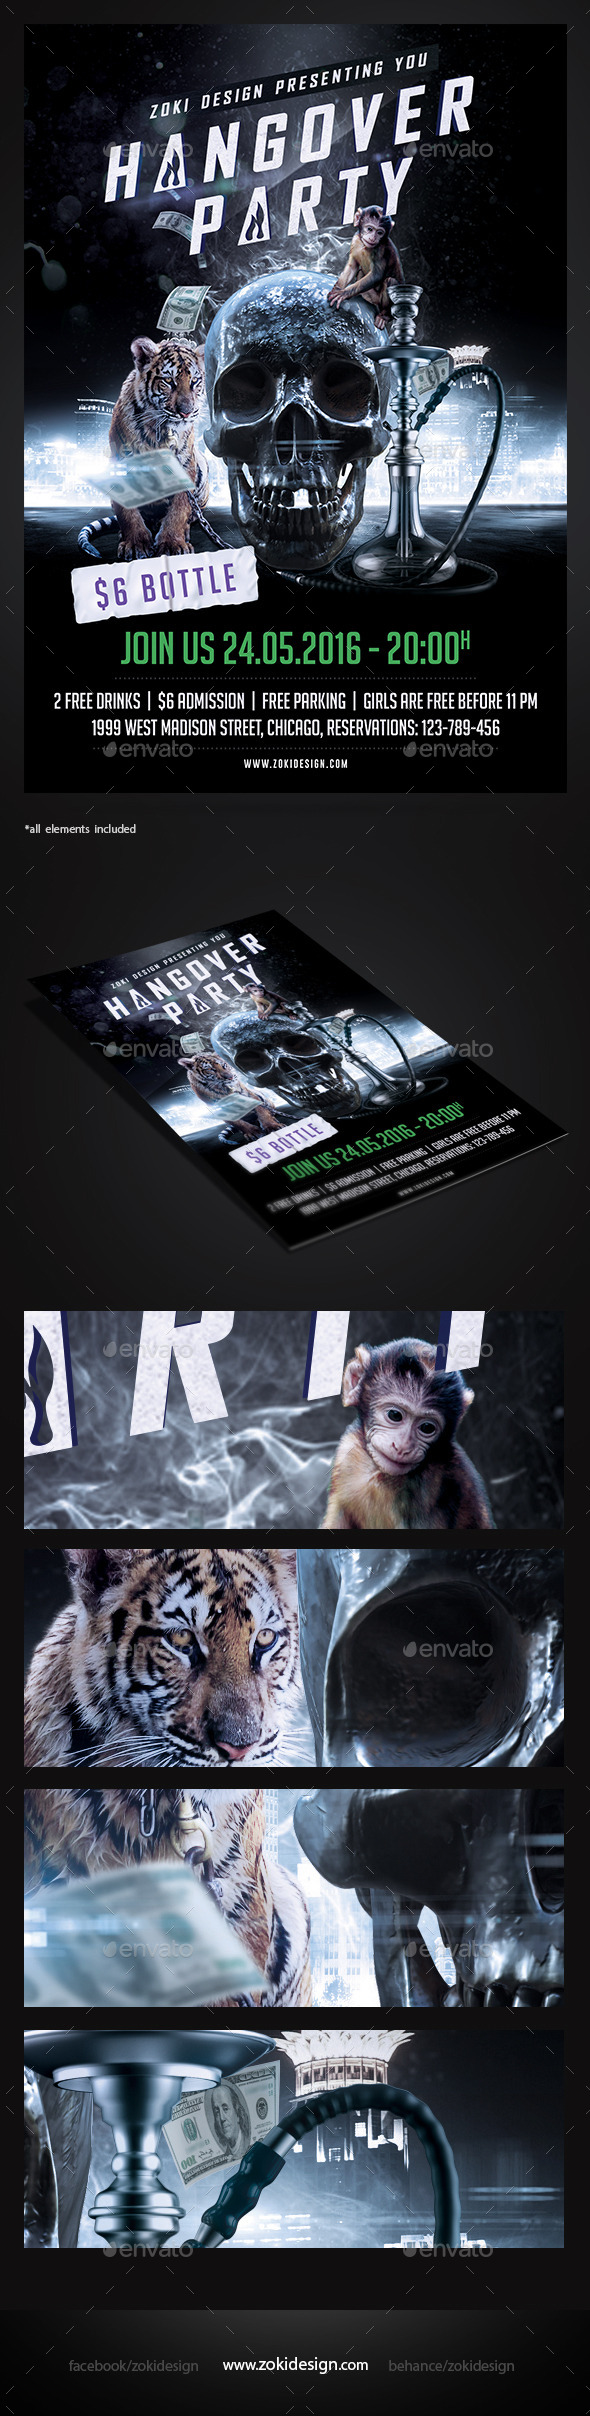 Hangover Party Flyer - Events Flyers